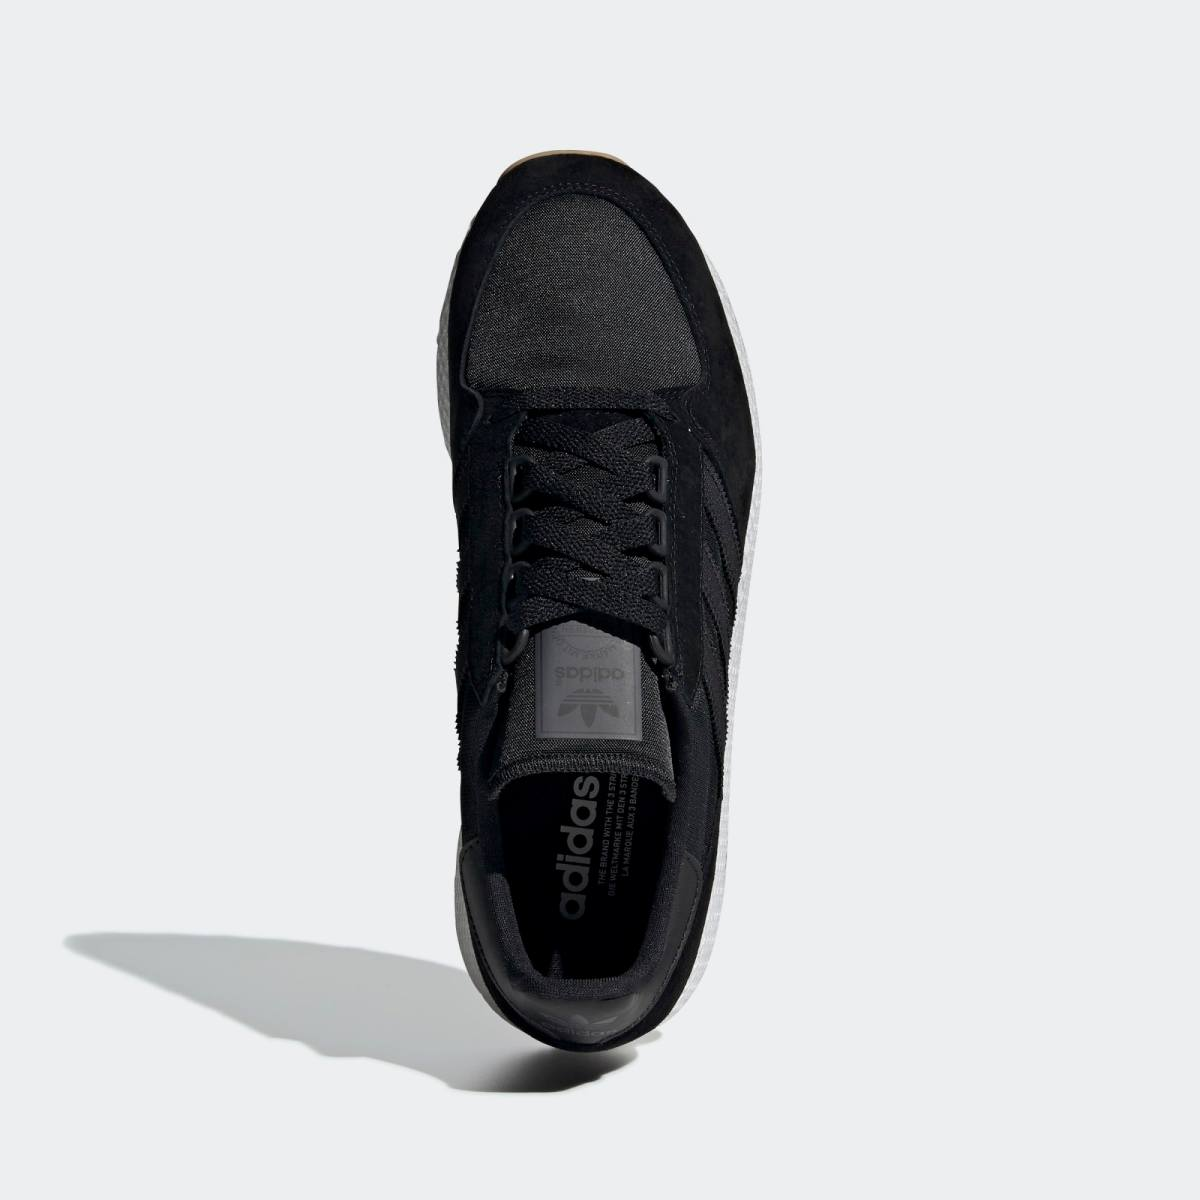 Forest_Grove_Shoes_Black_CG5673_02_standard